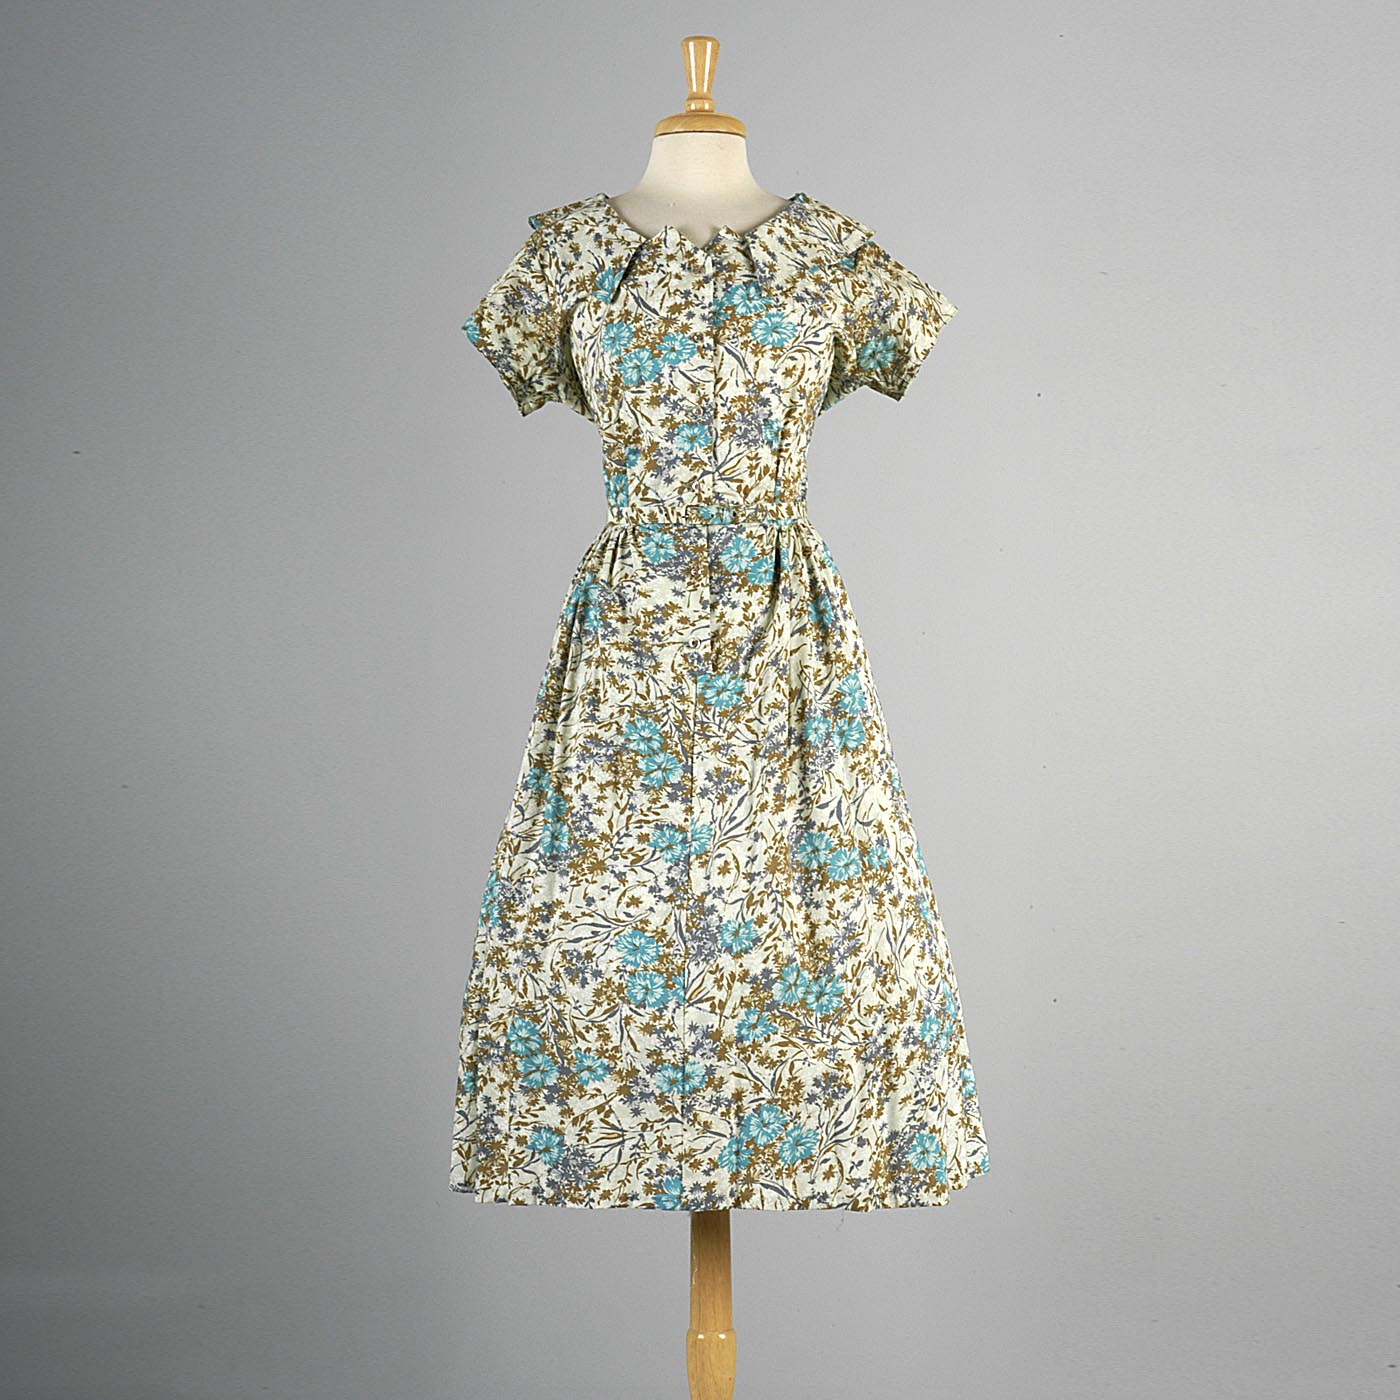 1950s Floral Print Day Dress with Elegant Neckline